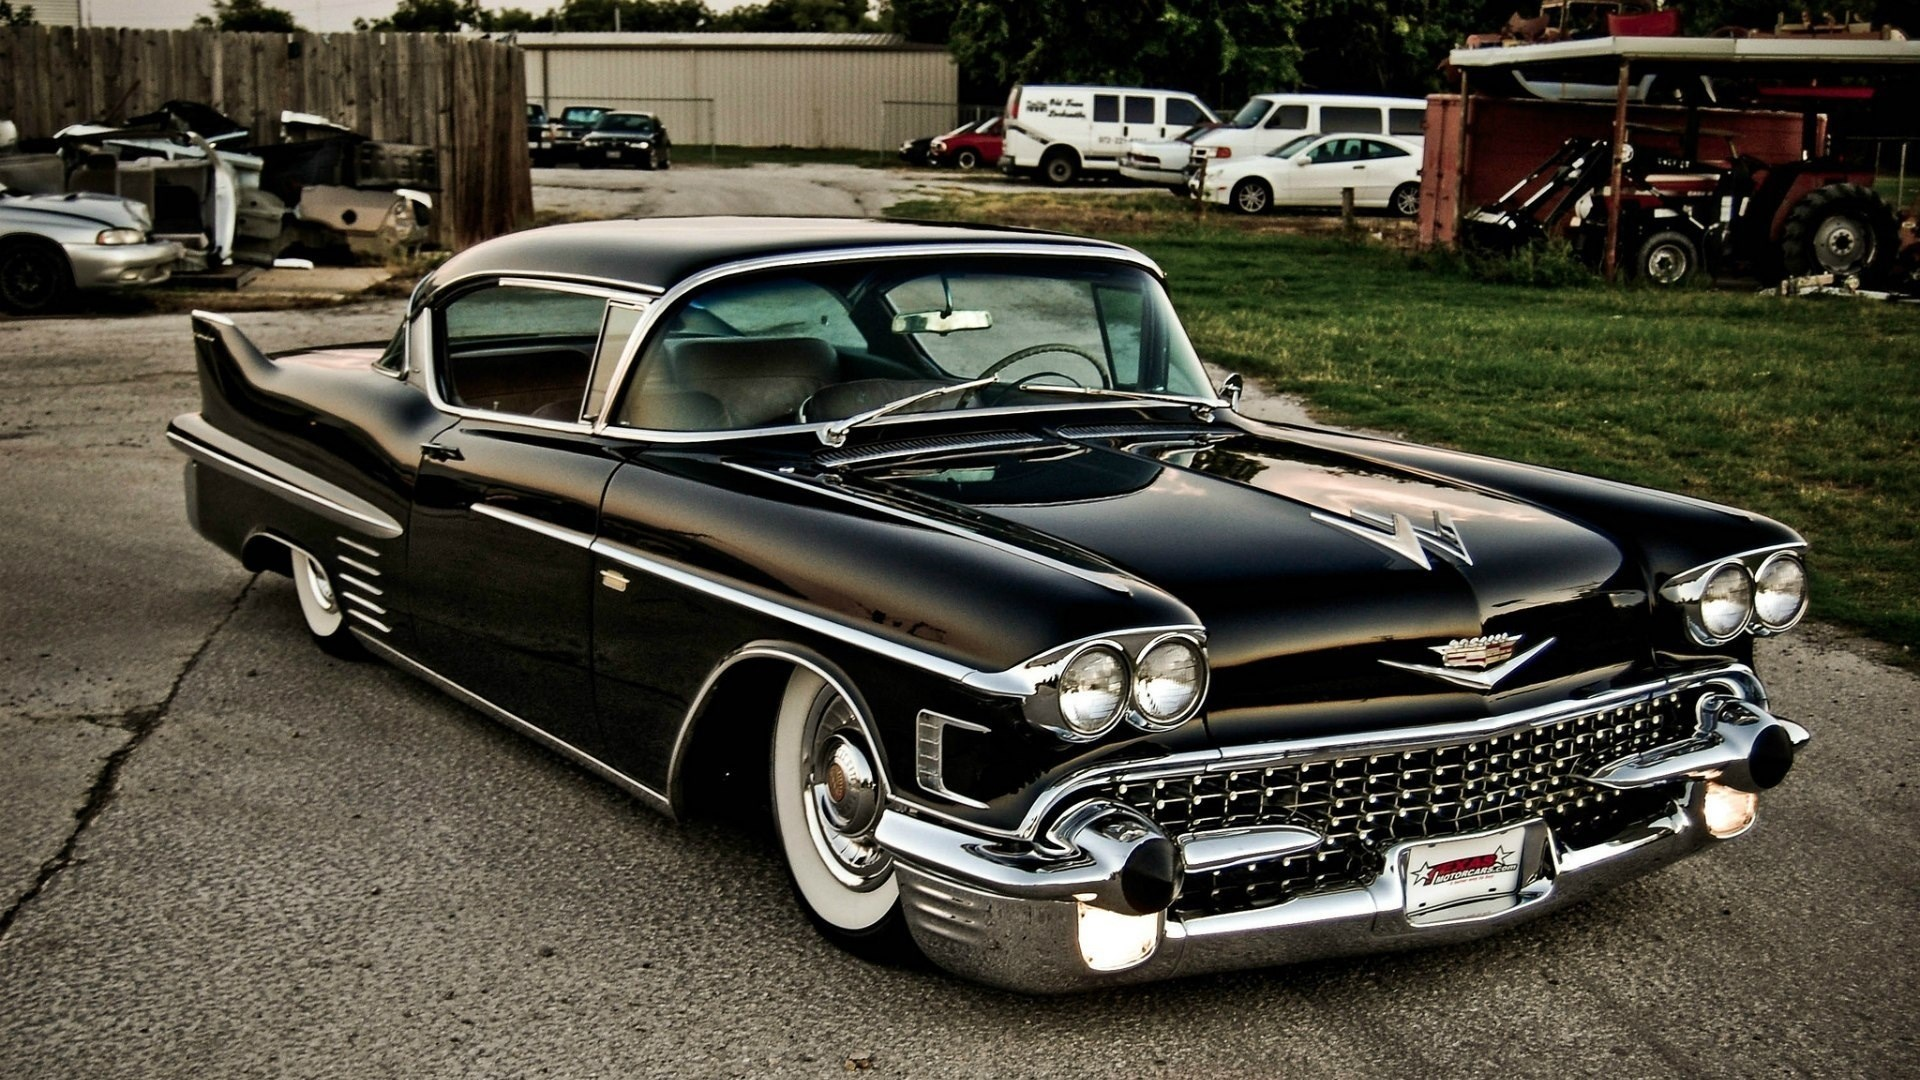 236 Cadillac HD Wallpapers | Background Images - Wallpaper ...